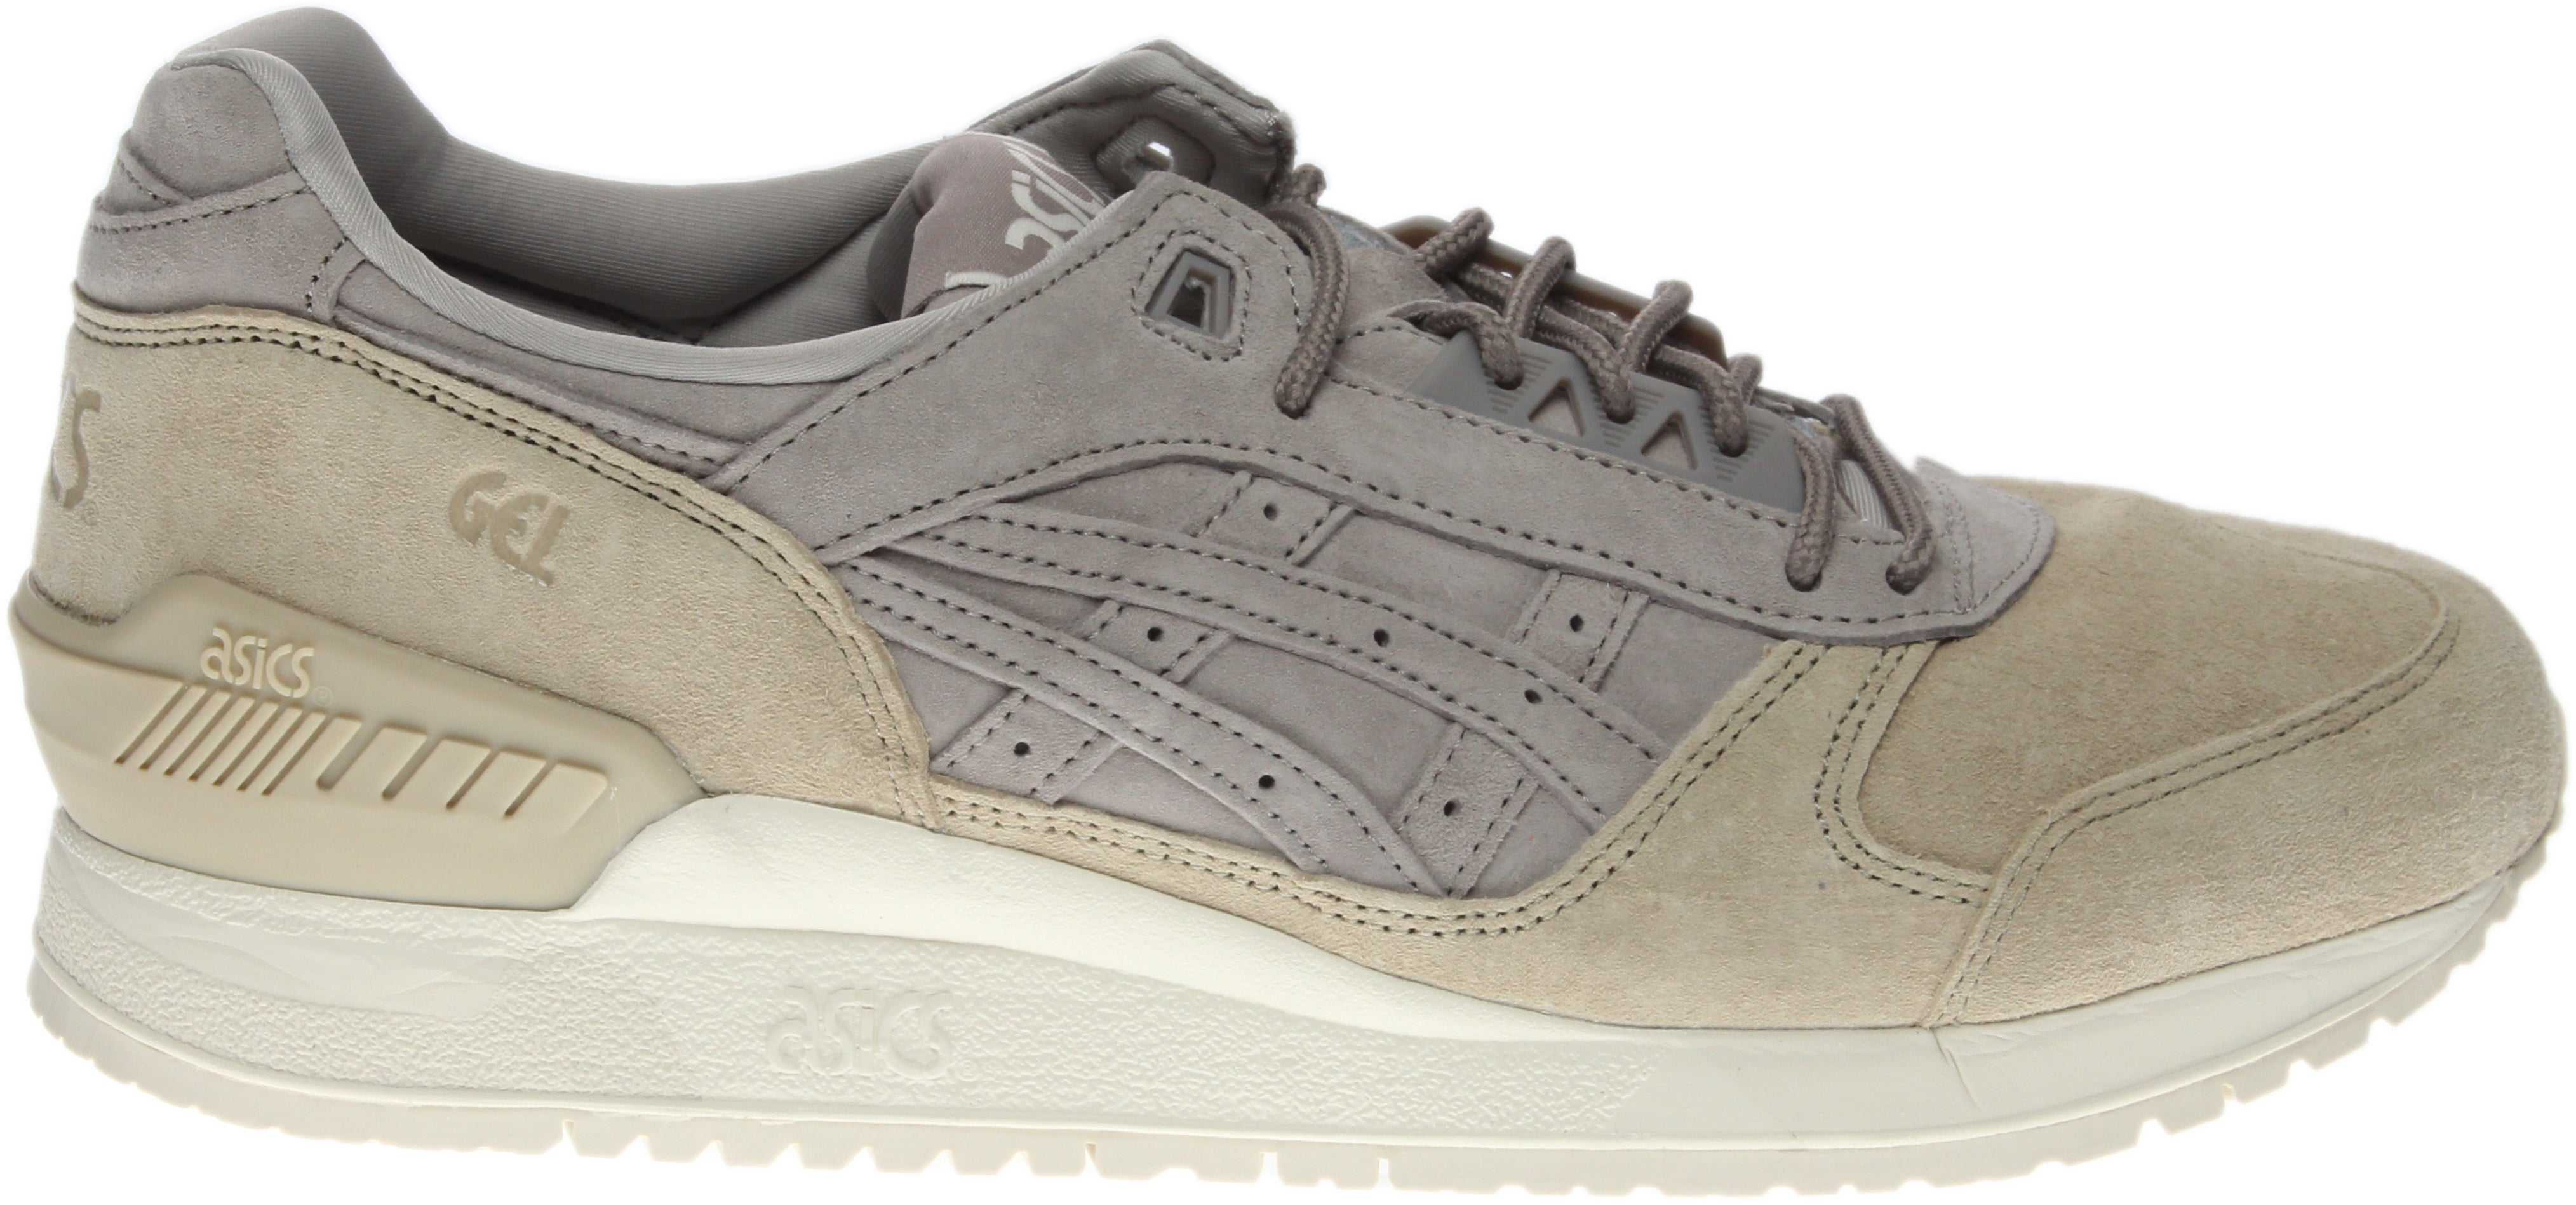 fa2ce320aa3b Details about ASICS GEL-Respector Running Shoes - Grey - Mens